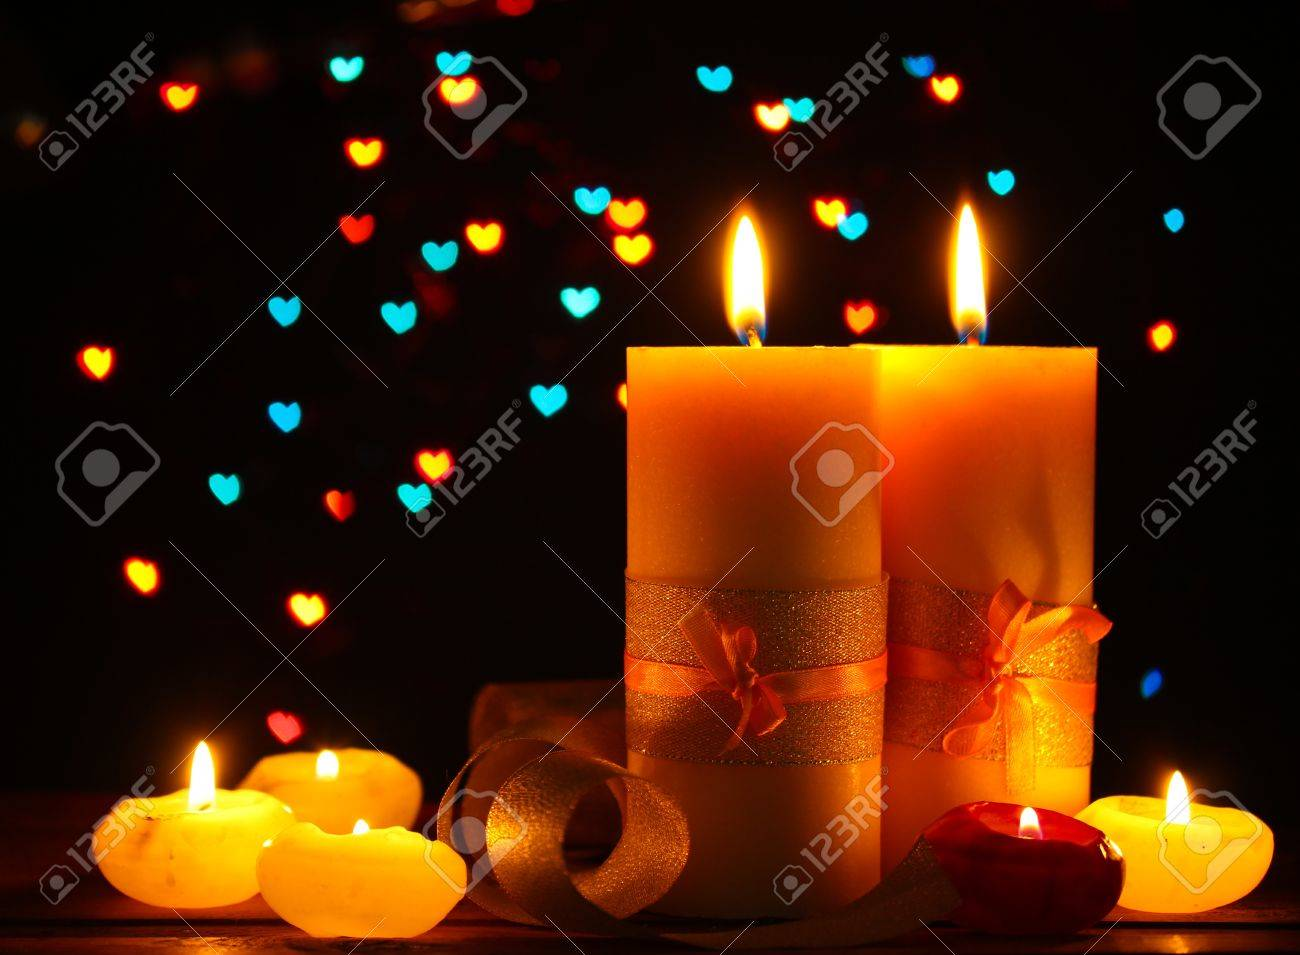 Beautiful candle and decor  on wooden table on bright background Stock Photo - 12891949